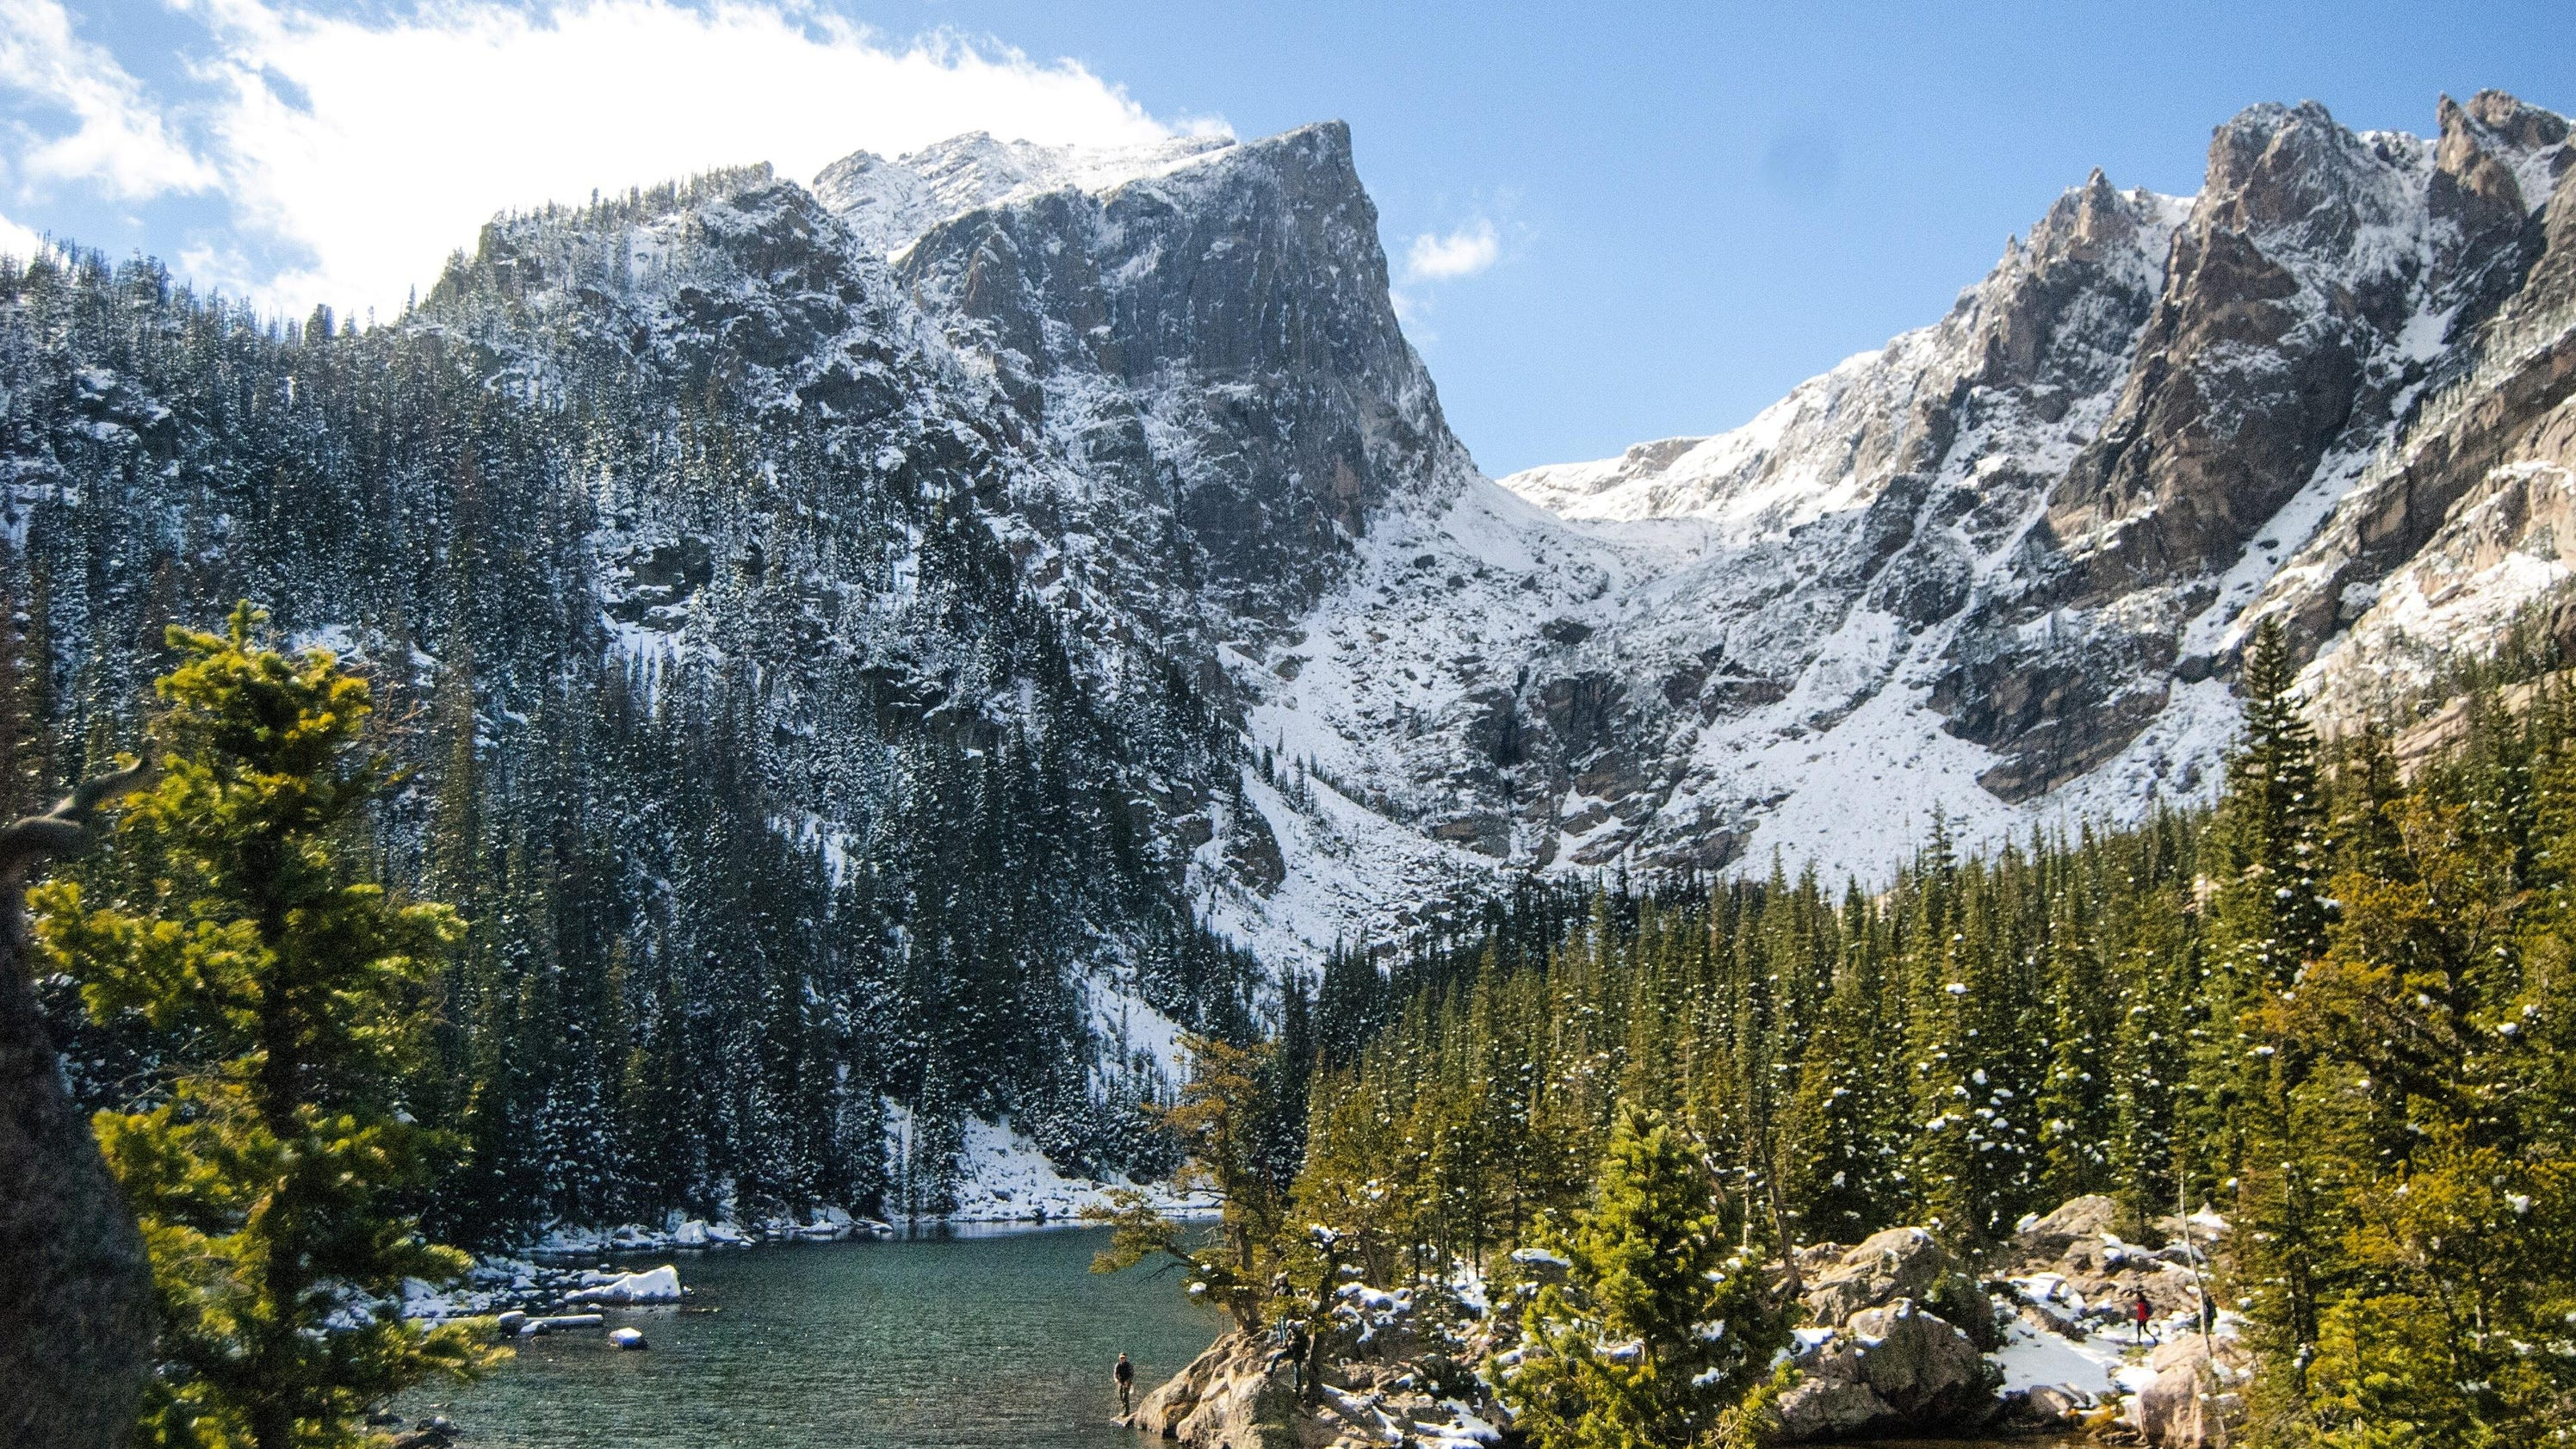 Nov 11 Free Day At Rocky Mountain National Park